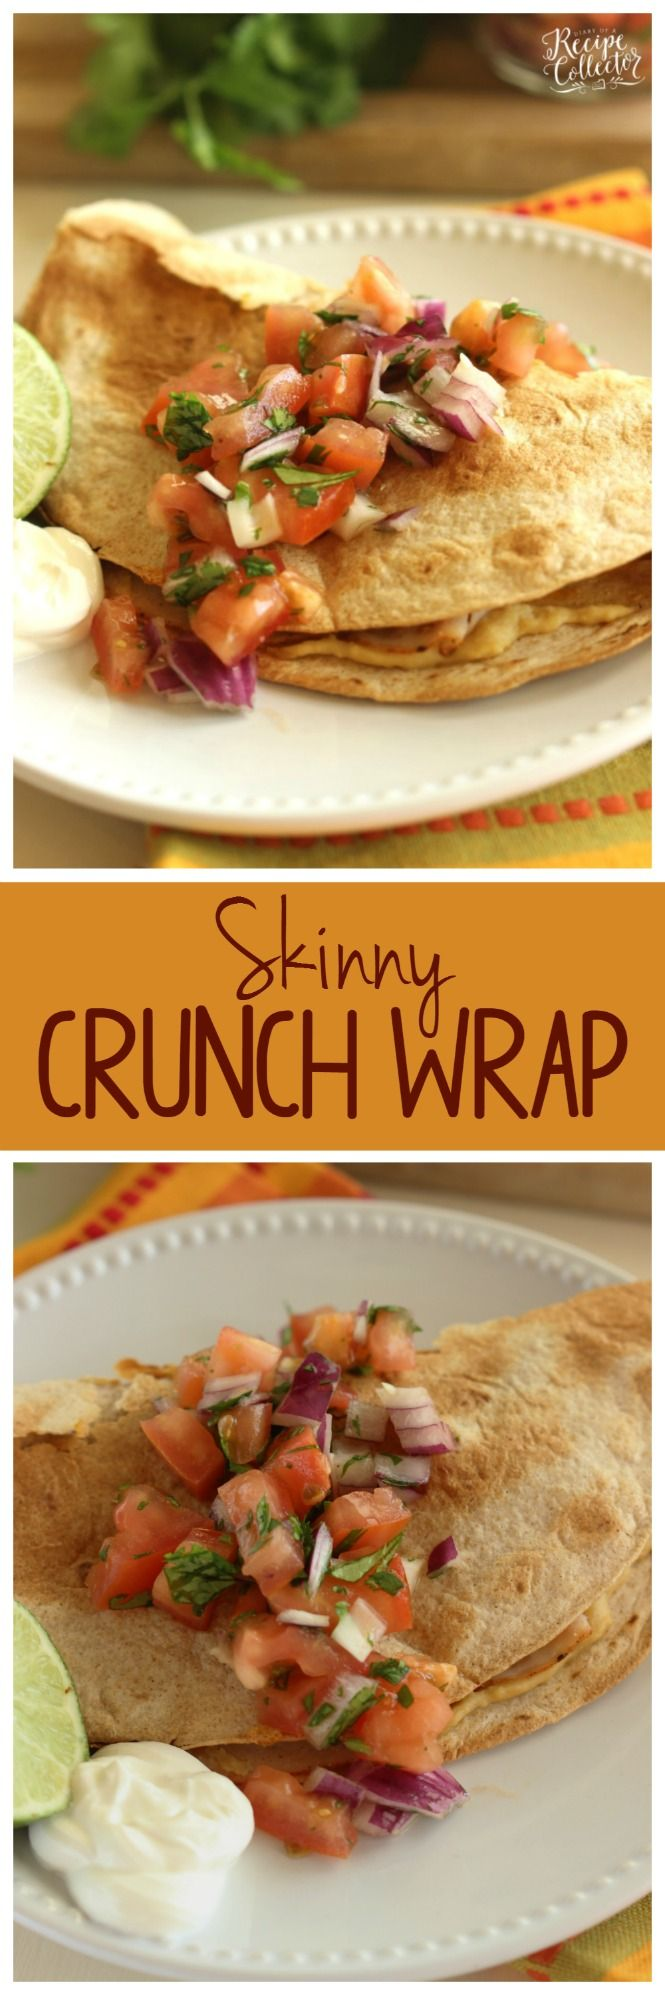 Skinny Crunch Wrap   An Easy And Light Lunch Idea Garnished With A Fresh  Pico Salsa.: